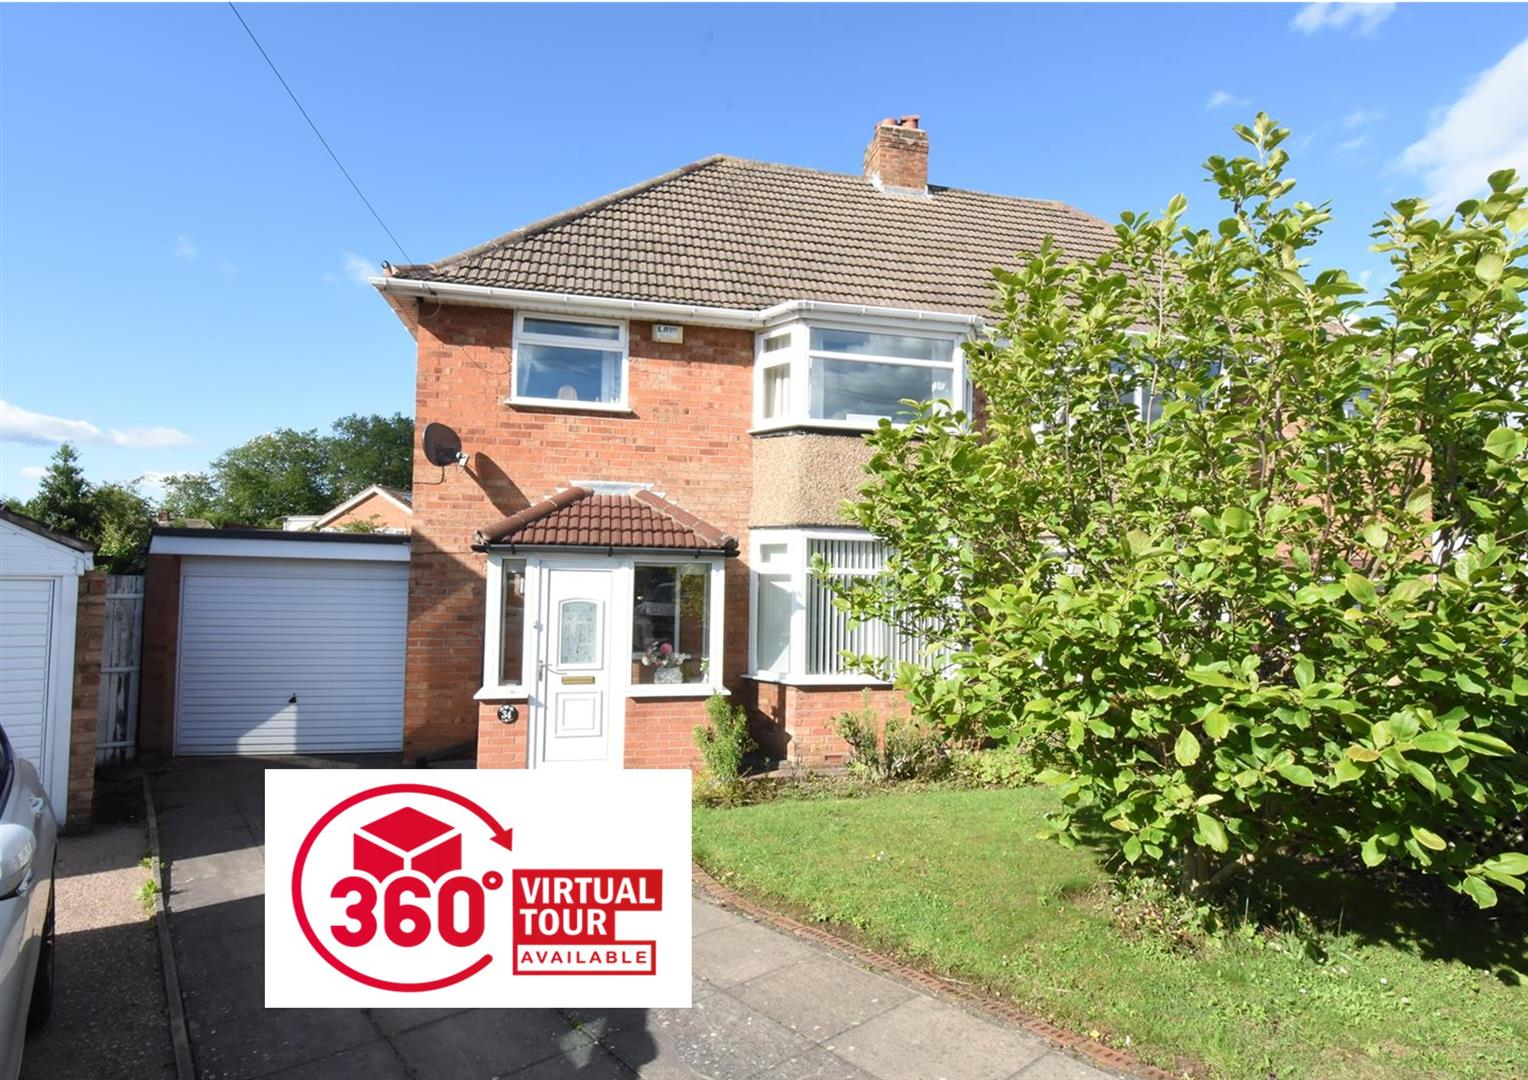 3 bed house for sale in Clayton Drive, Castle Bromwich, Birmingham, B36